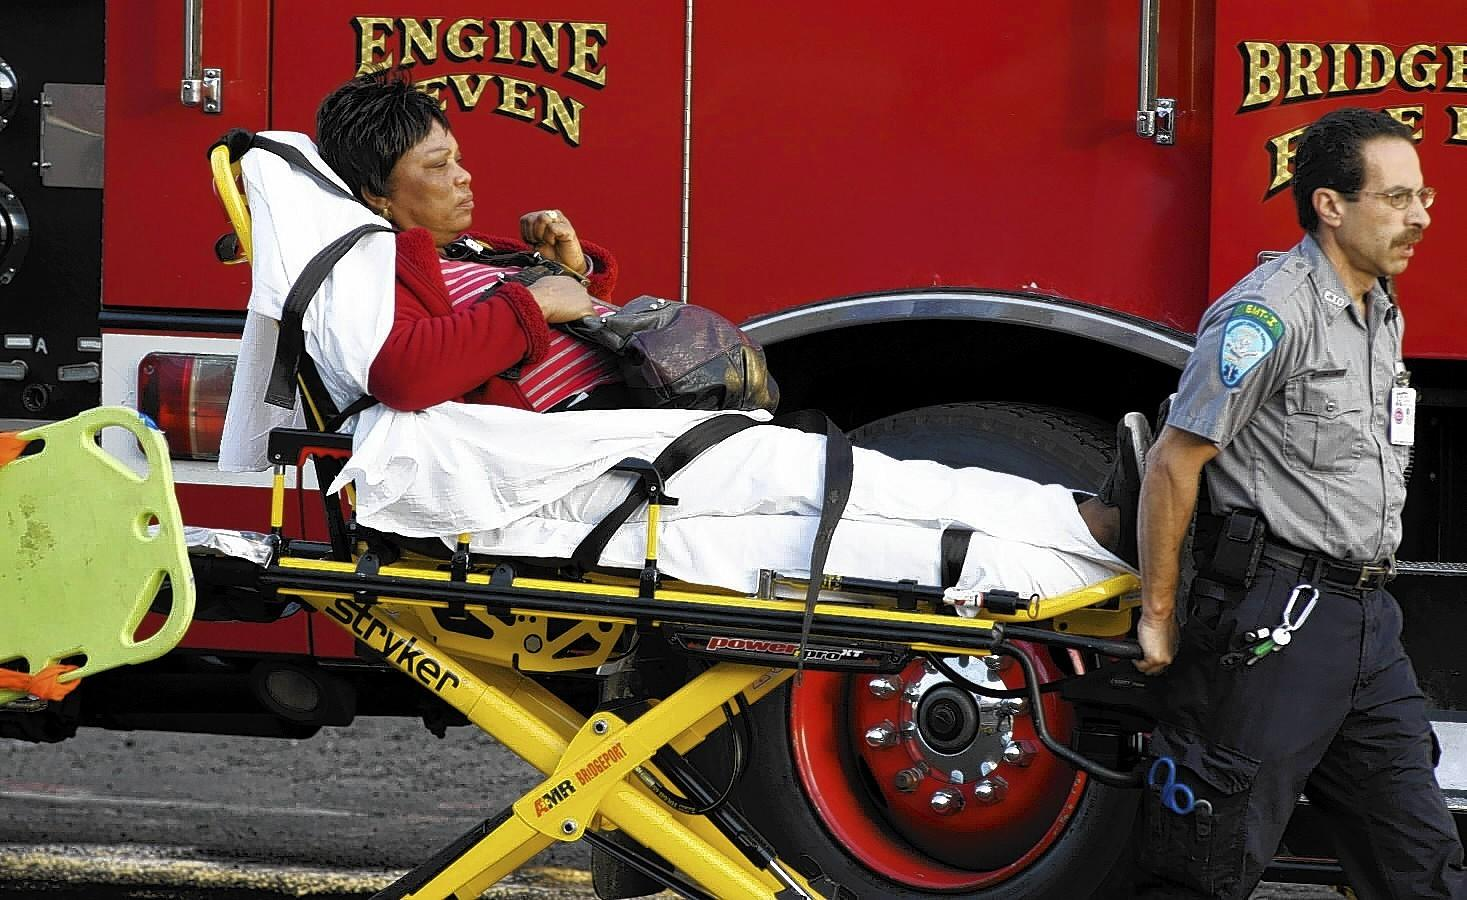 A woman is transported to the hospital after two commuter trains collided in Bridgeport, Connecticut May 17, 2013. Some 20 to 25 people were injured on Friday when two trains collided on a commuter line near Fairfield, Connecticut, but there were no reports of fatalities, police and transit authorities said on Friday. The accident occurred when an eastbound train on the Metro North Railroad derailed and collided with a westbound train near Fairfield, said Metropolitan Transit Authority spokesman Aaron Donovan.